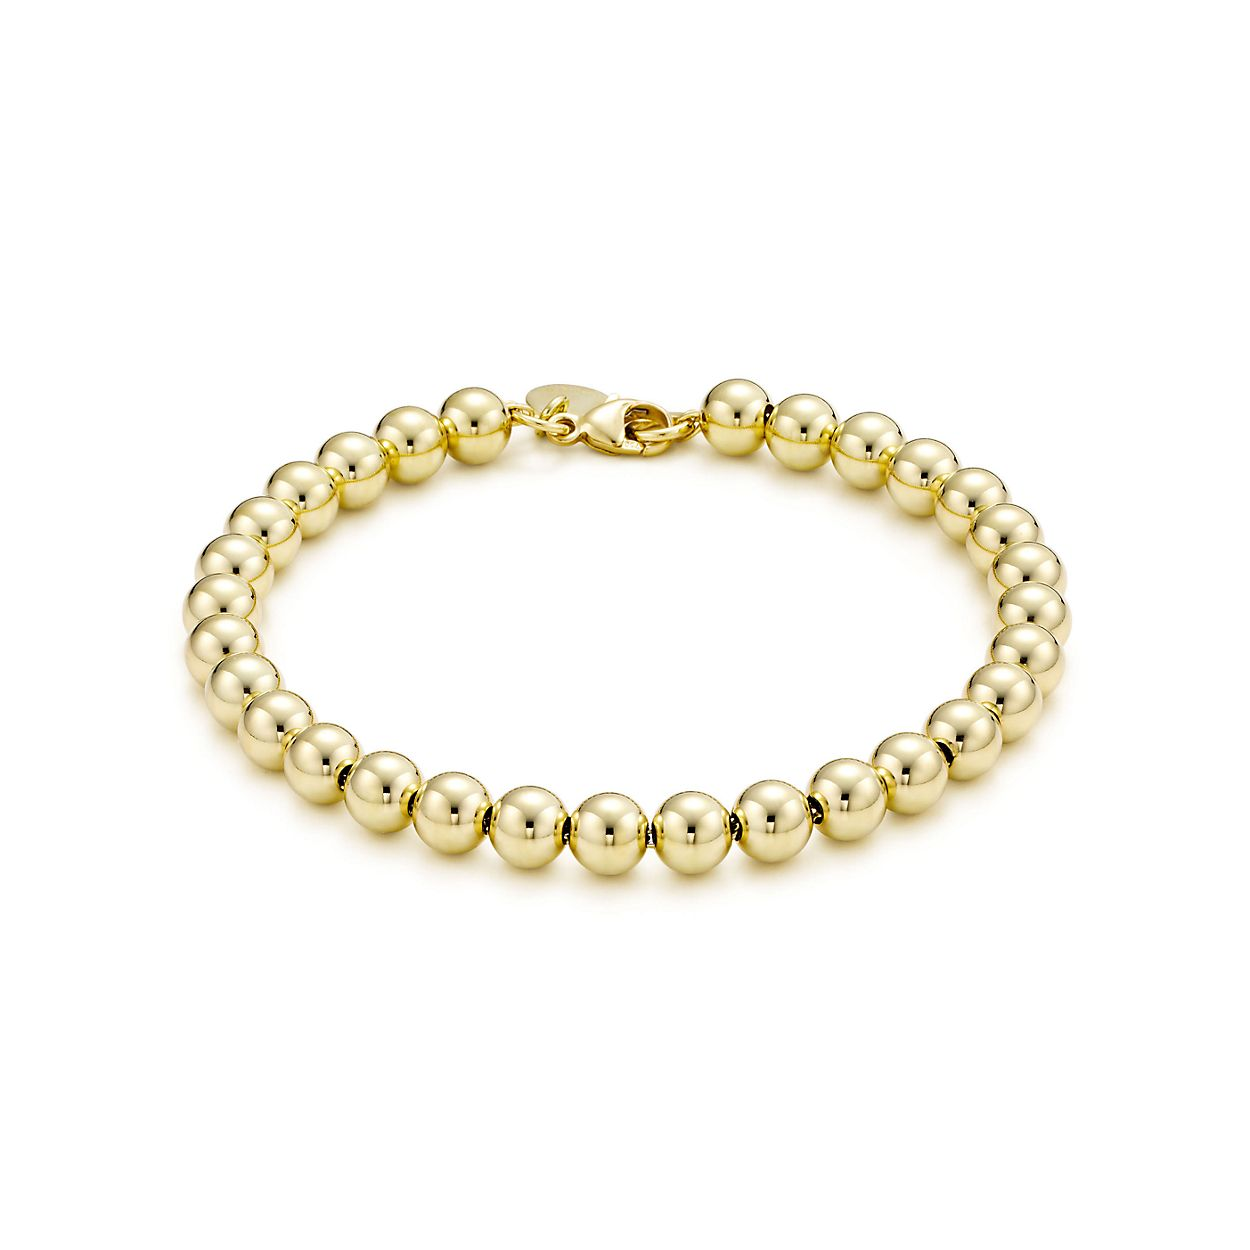 Tiffany Hardwear Ball Bracelet